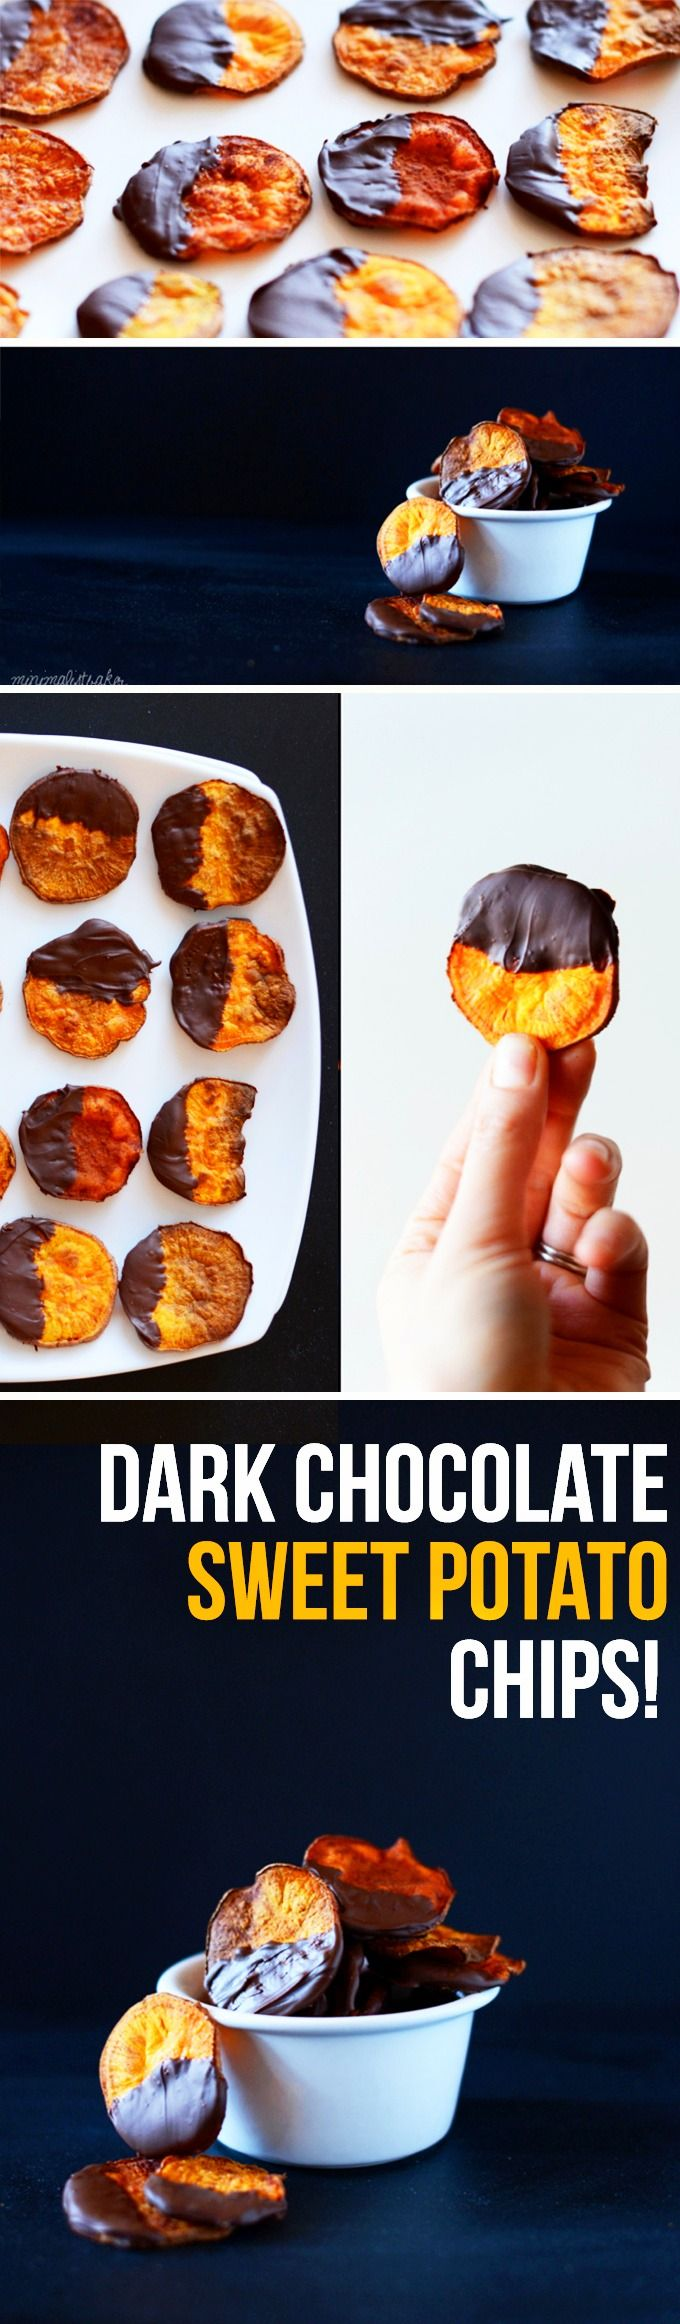 AMAZING 5-ingredient baked sweet potato chips dipped in a crunchy dark chocolate shell! Perfect for snacking or an antioxidant-rich dessert! #vegan #glutenfree